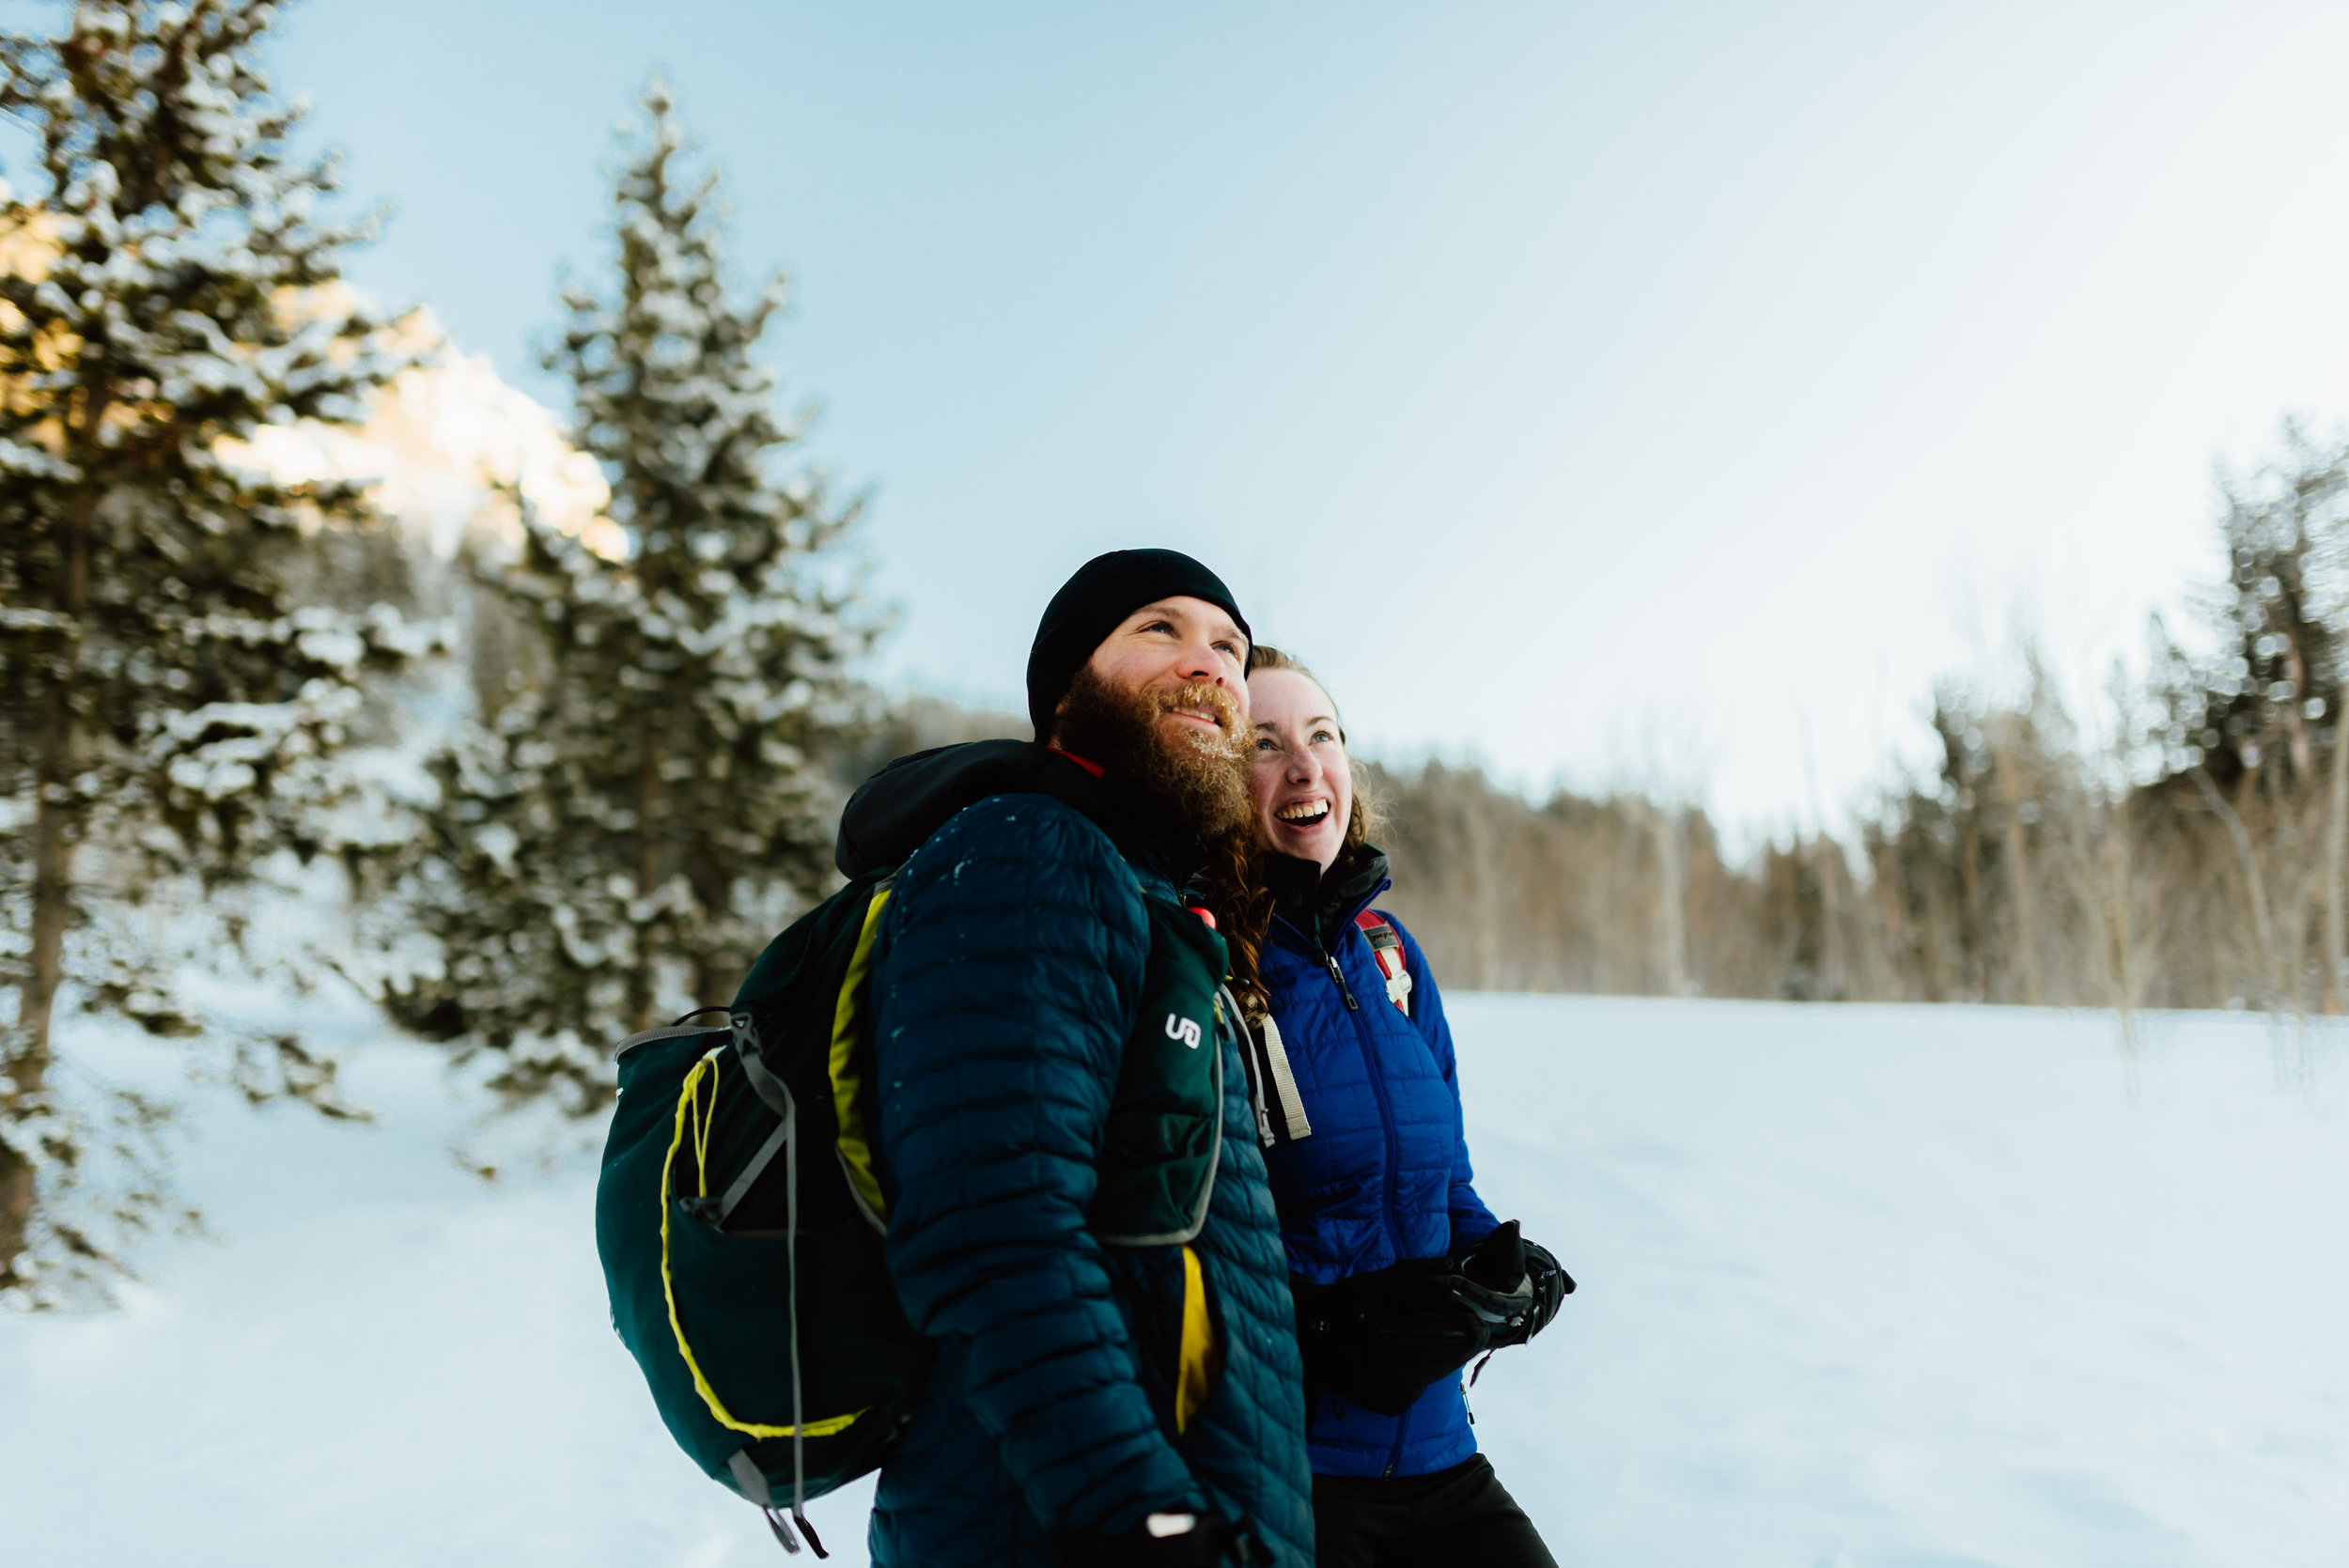 The happy couple celebrating their engagement in the Rocky Mountains! I'd love to spend a day with my fiancé hiking and snowshoeing through the forest for our engagement photos!| Colorado engagement photos by adventurous, mountain wedding photographer, Maddie Mae.